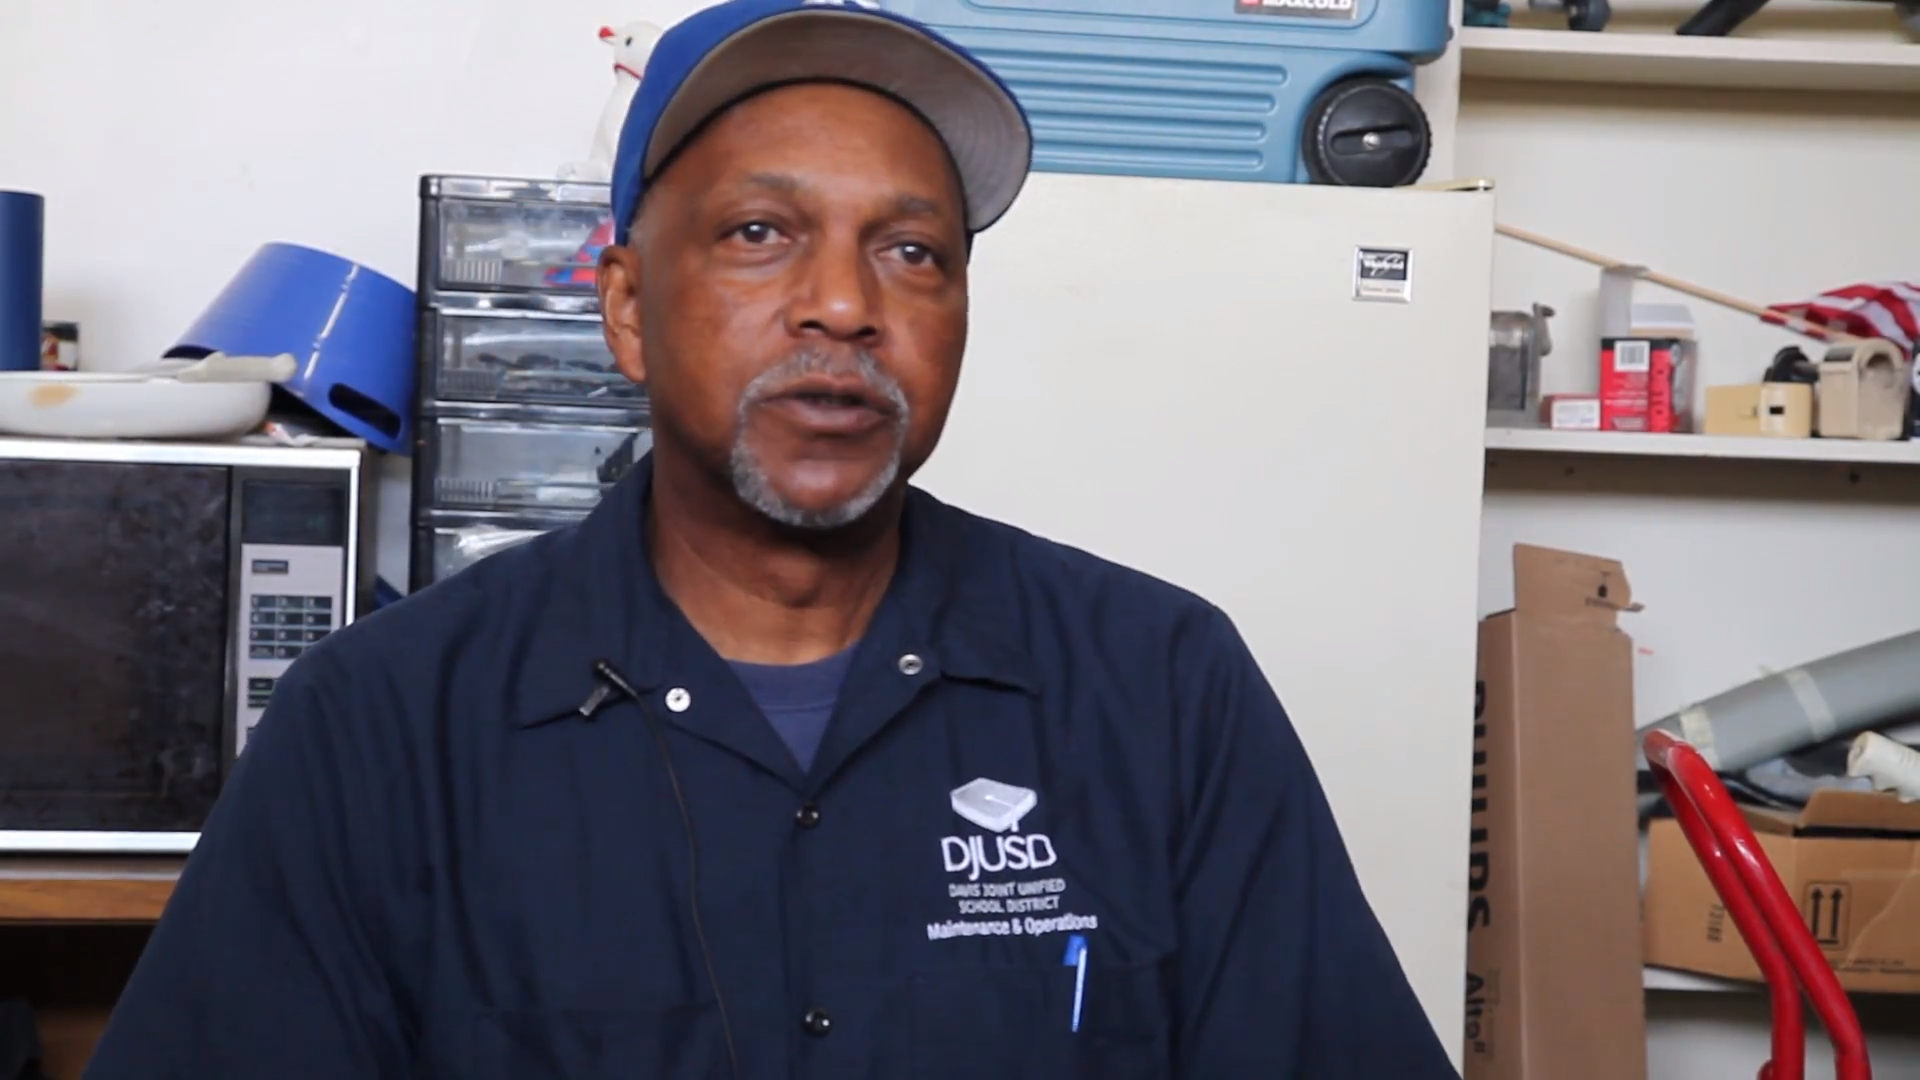 VIDEO: High School Custodian Explains Job Difficulties